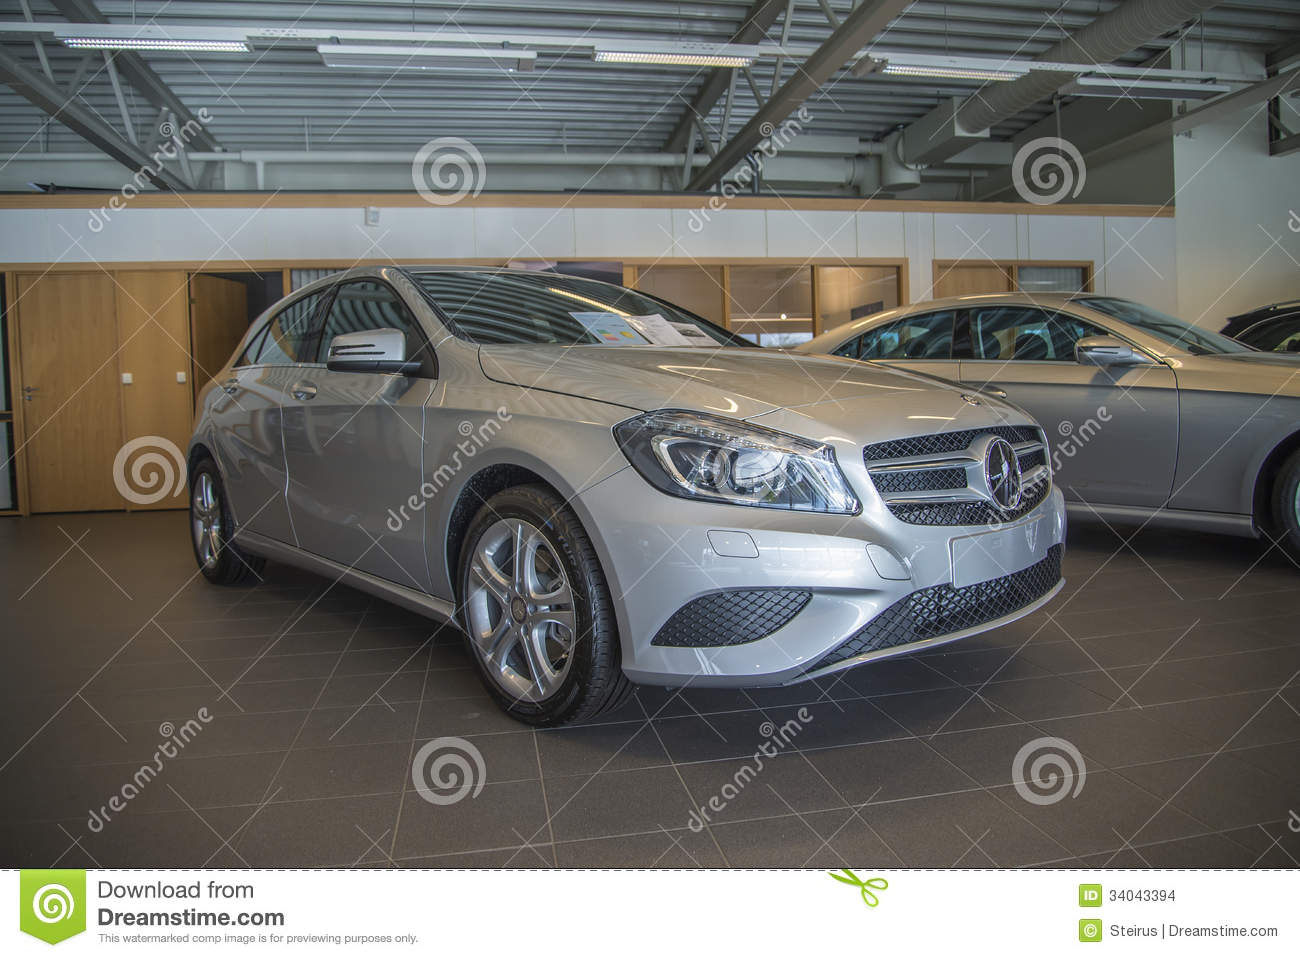 For sale mercedes benz a class editorial stock image for Mercedes benz dealership for sale